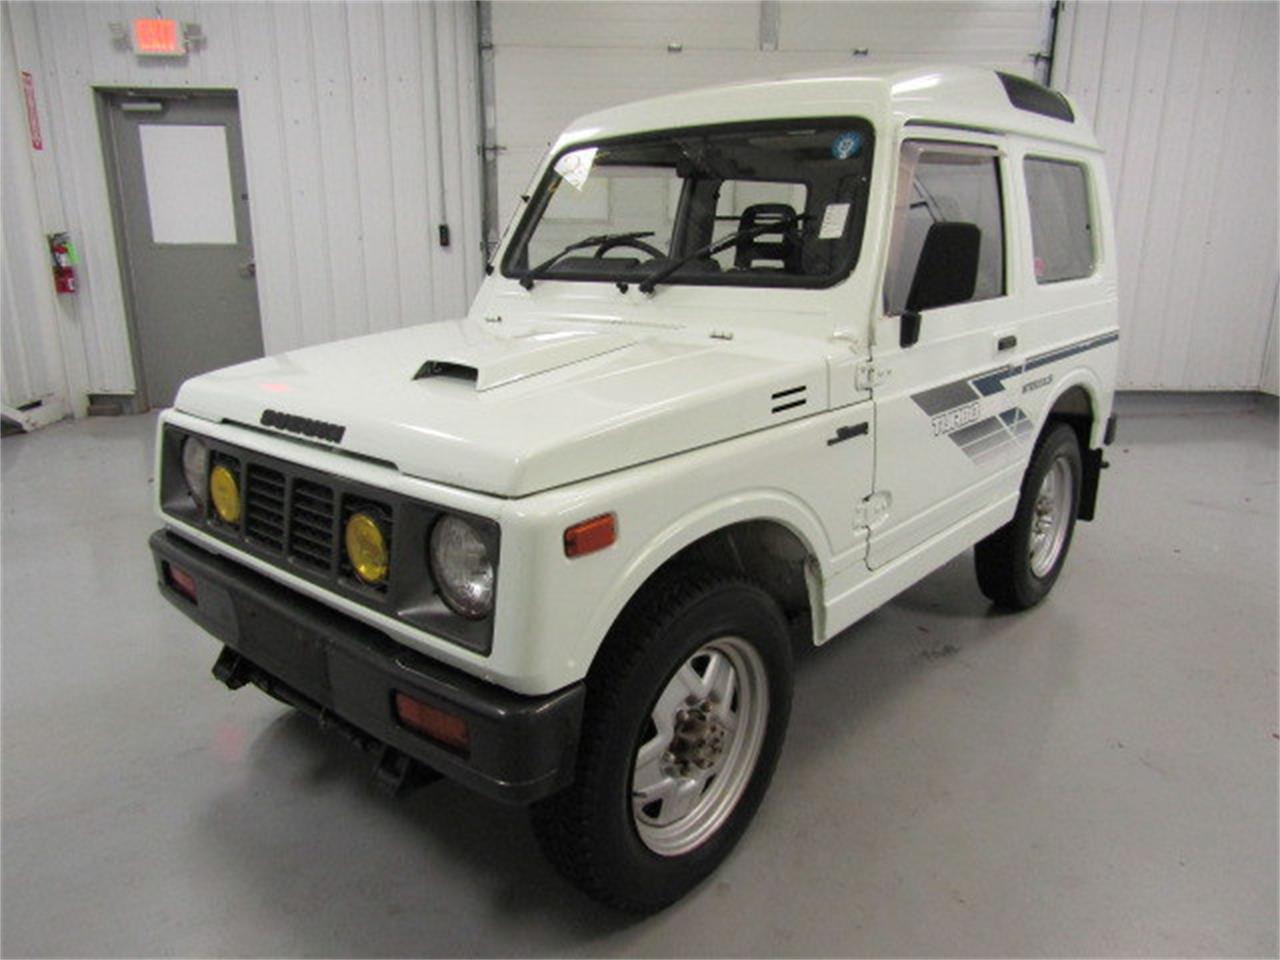 Large Picture of 1987 Suzuki Jimmy located in Christiansburg Virginia - $3,999.00 Offered by Duncan Imports & Classic Cars - JM3N